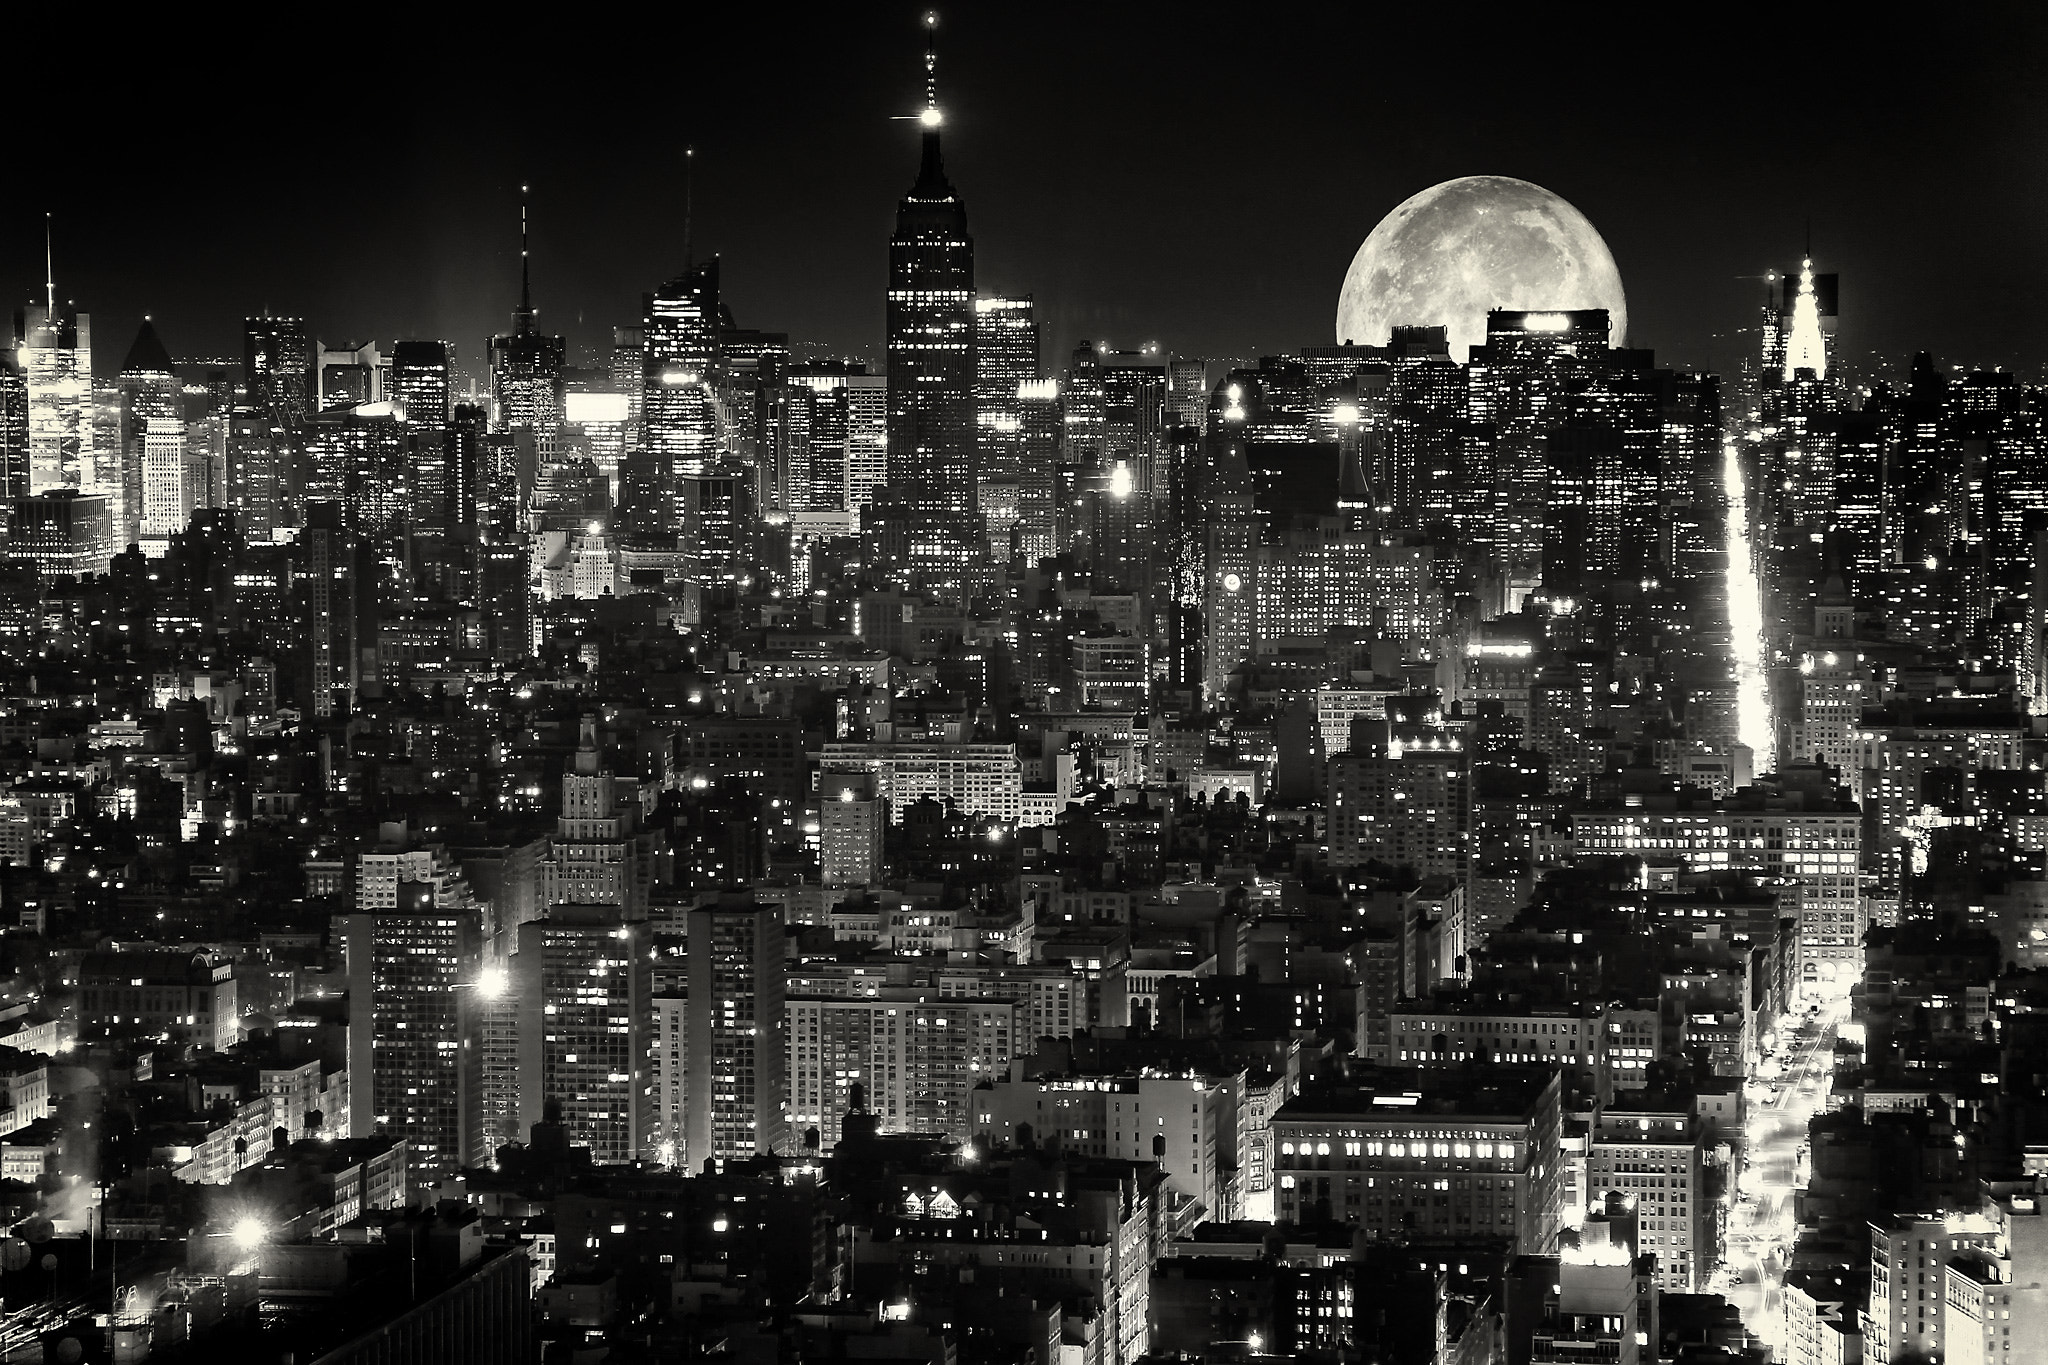 Photograph The city that never sleeps by Alex Teuscher on 500px